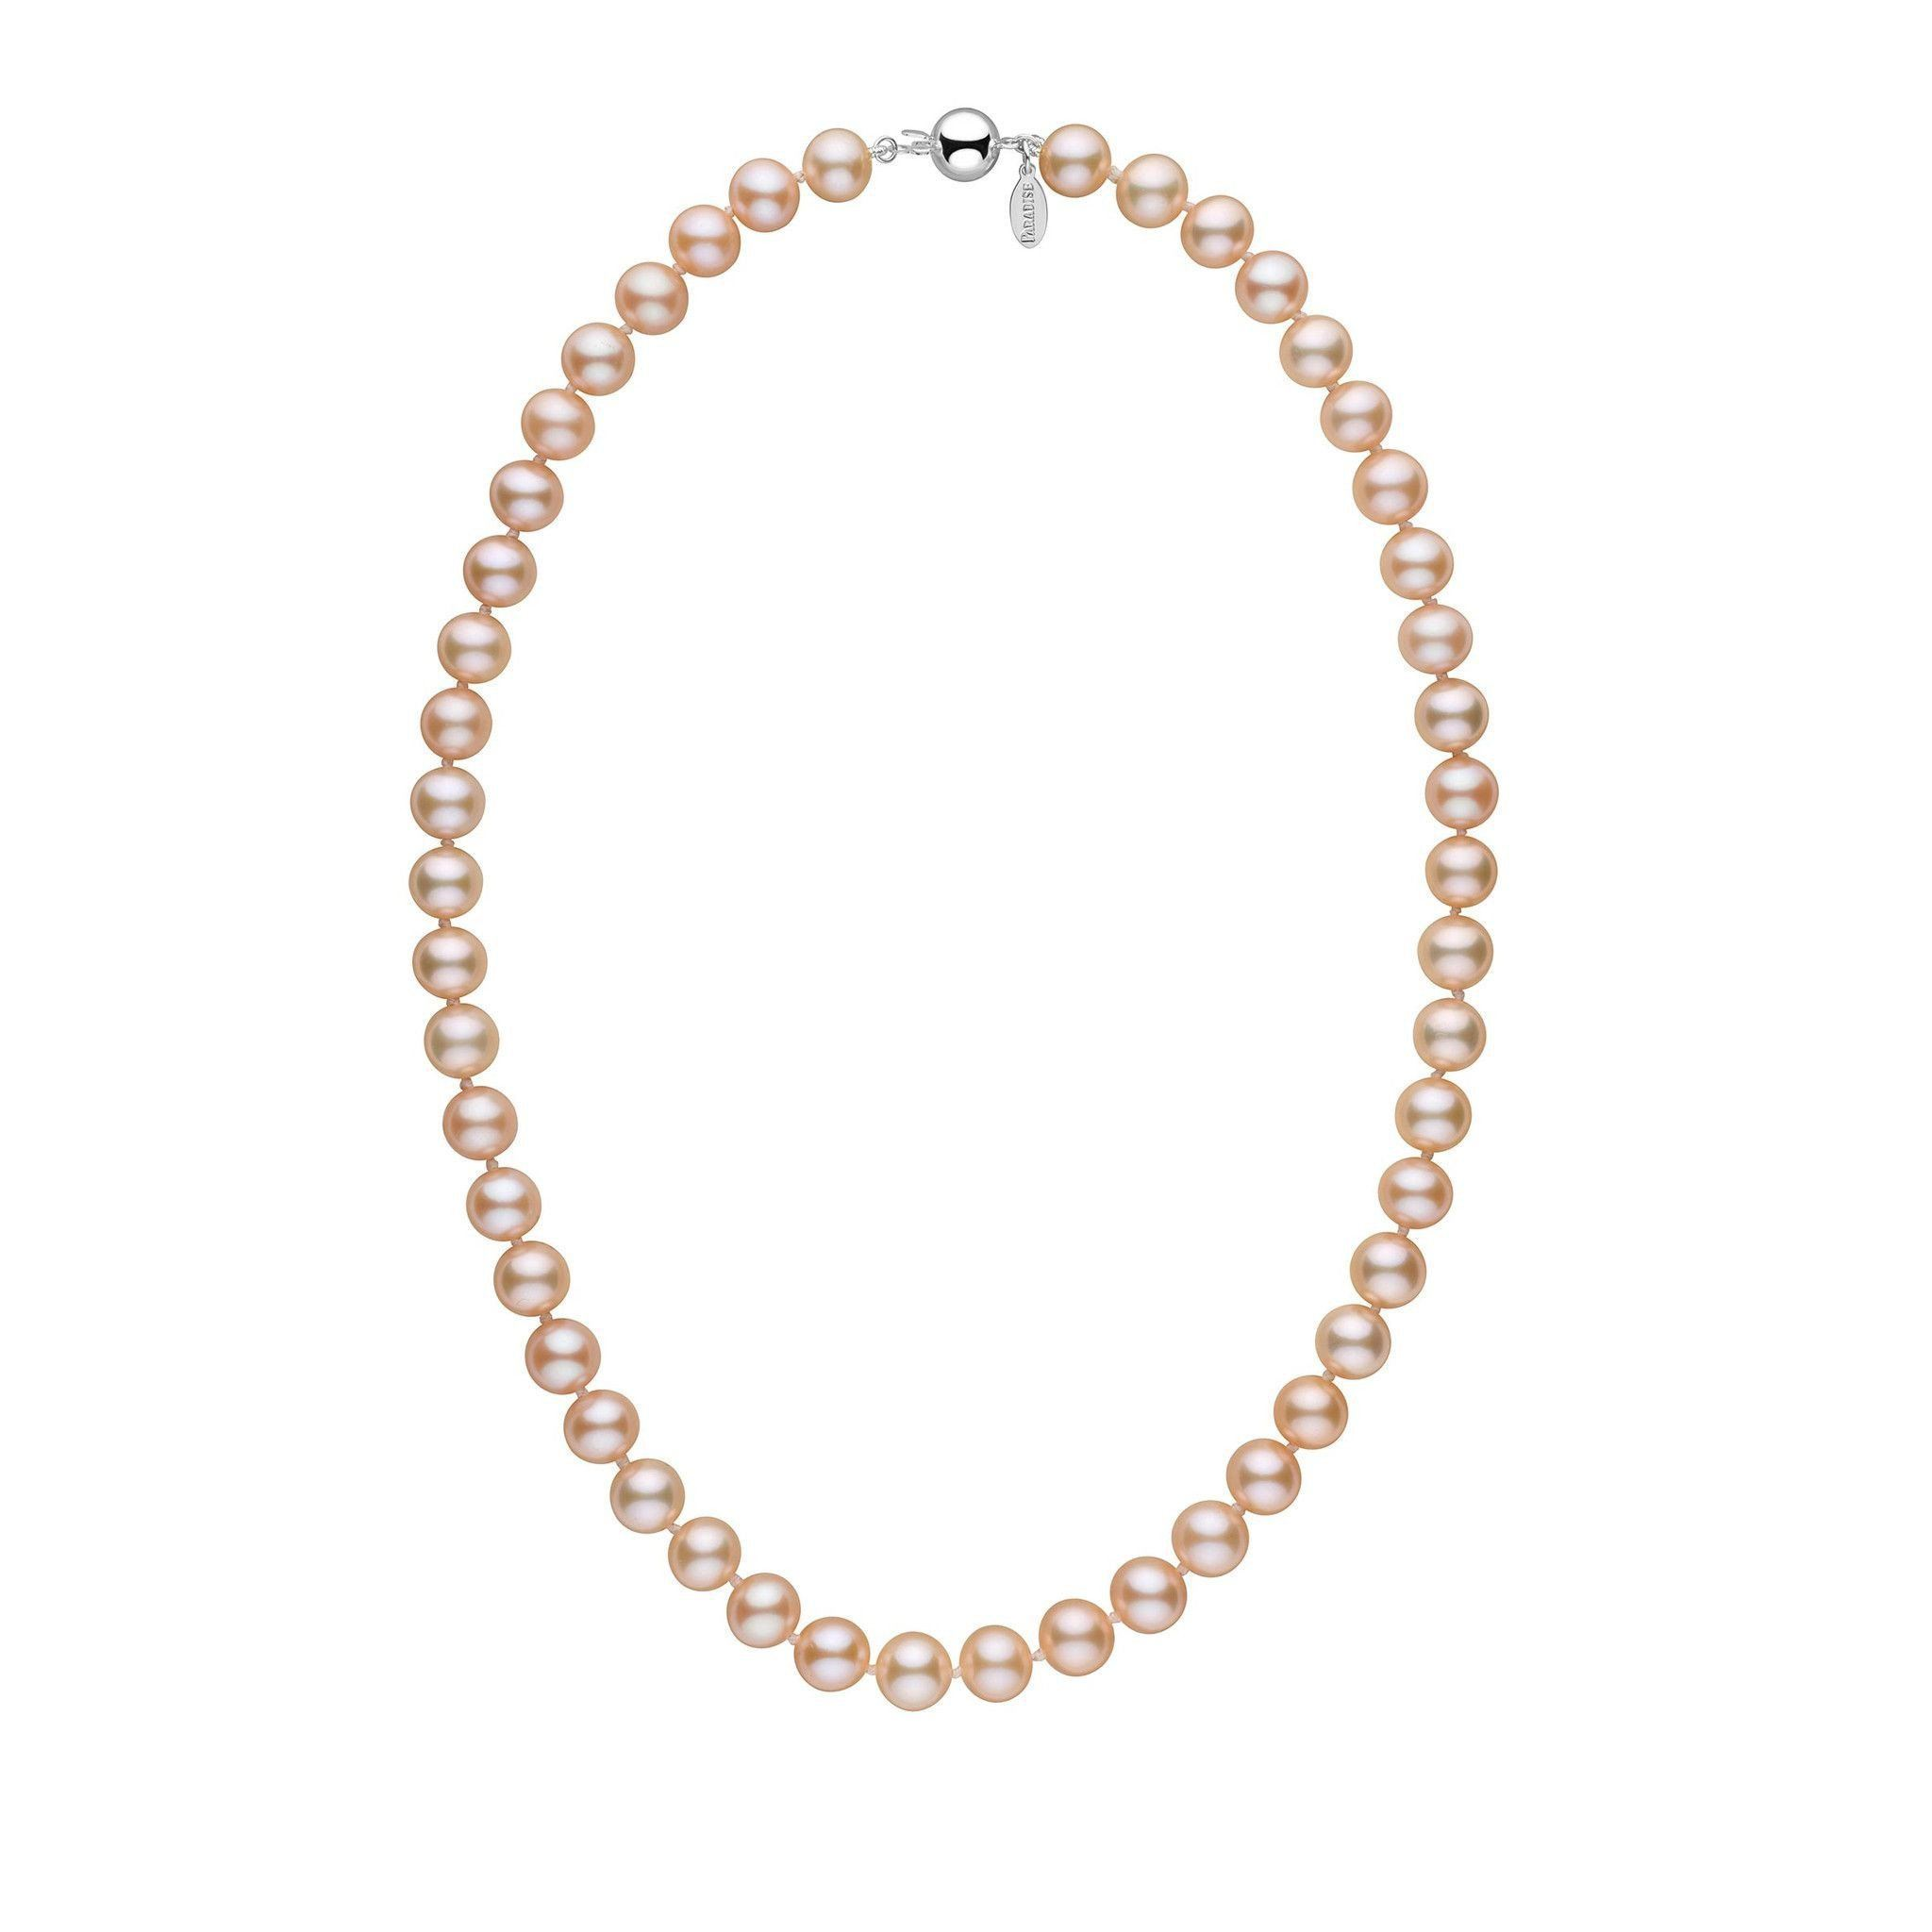 8.5-9.0 mm 18 Inch Pink to Peach Freshadama Freshwater Pearl Necklace